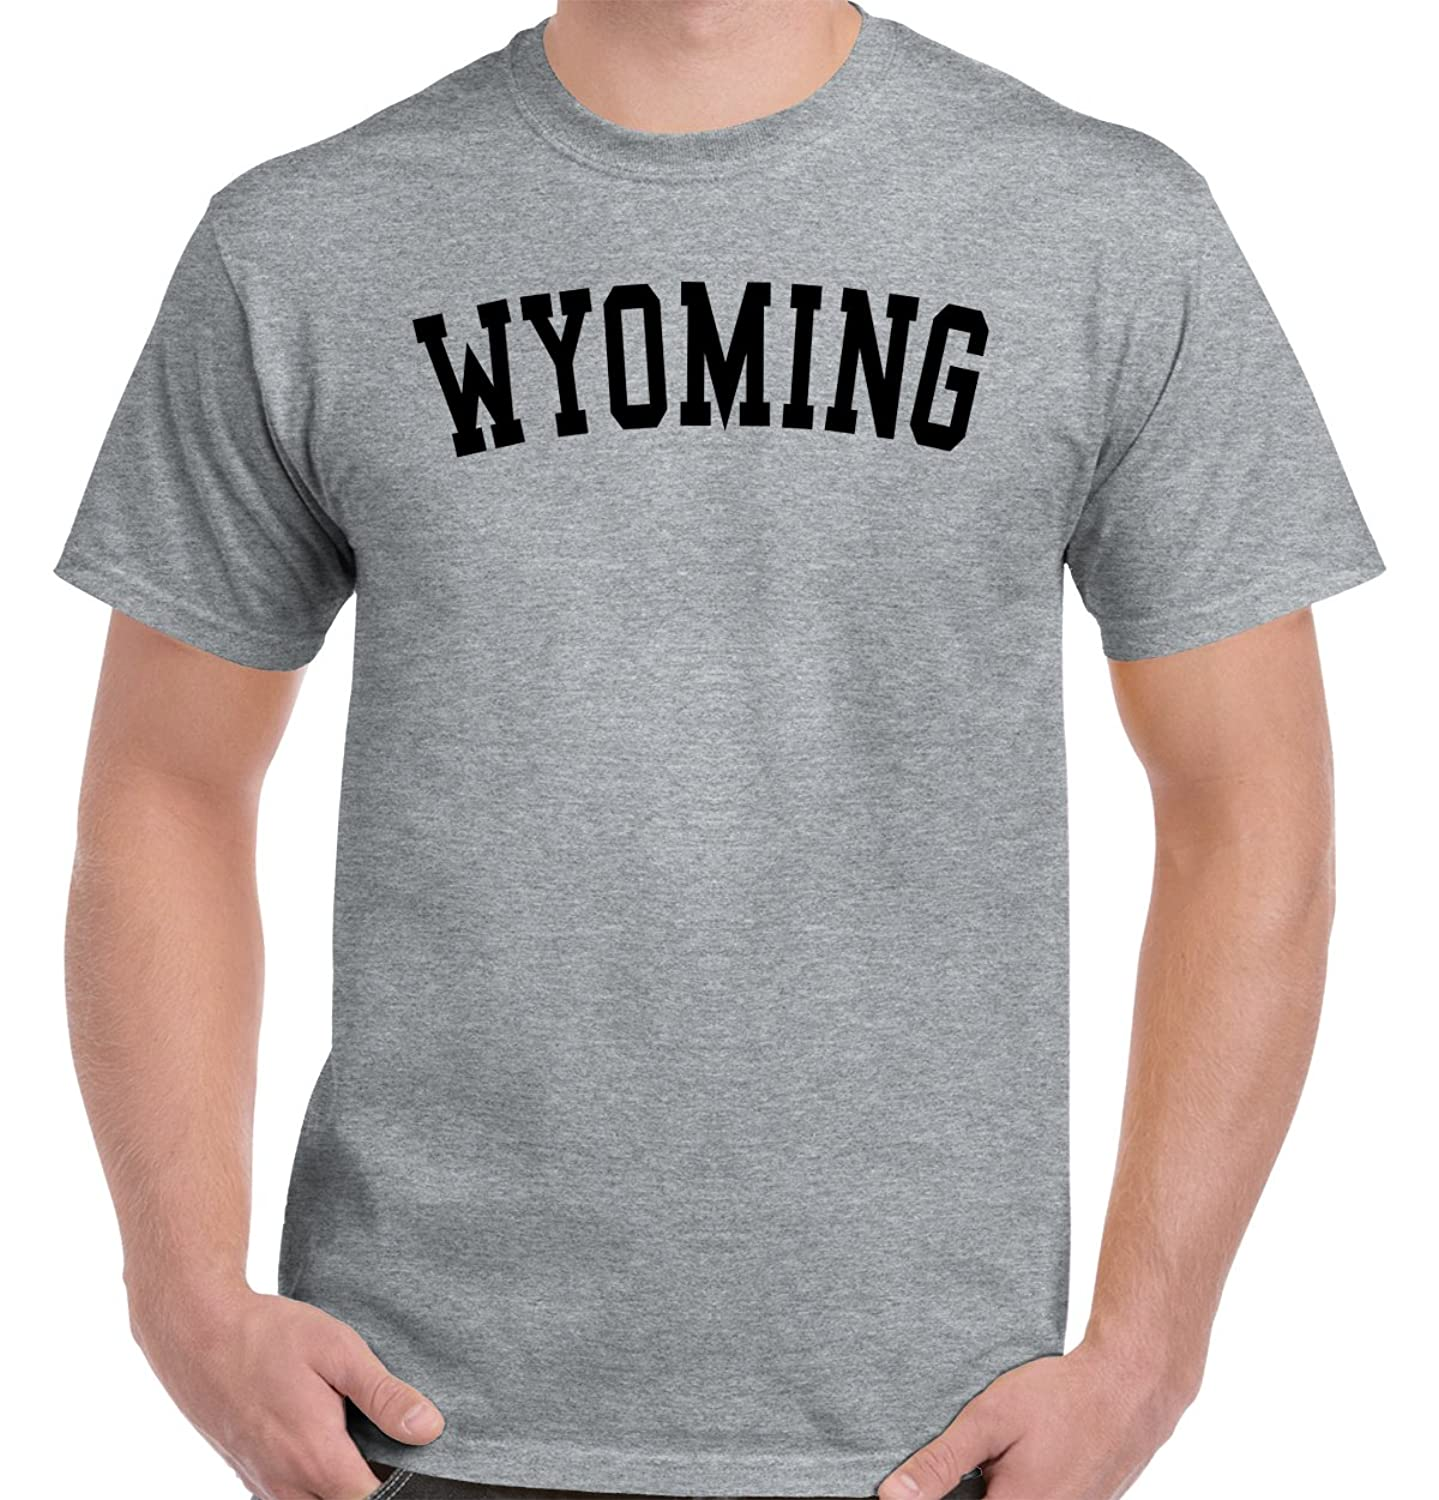 Wyoming Hometown State Usa Campus Gear Team Tee Gift Ideas T Shirts